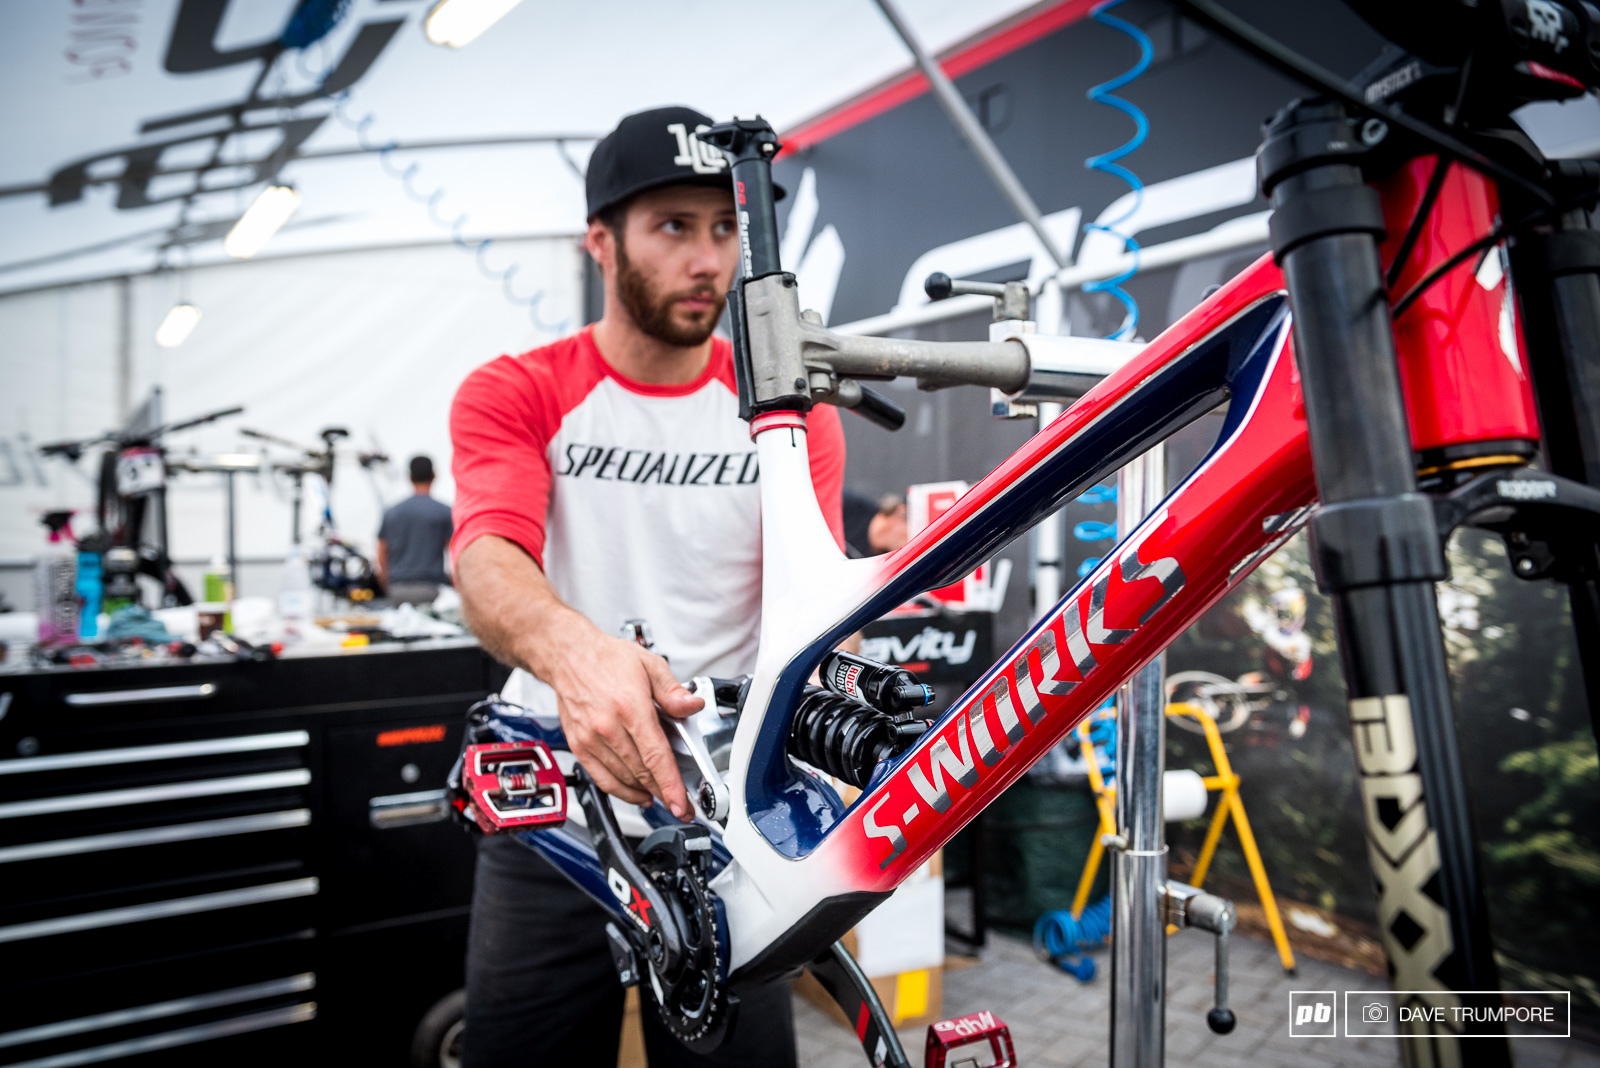 Kev Joly gets to work on Loris Vergier s Specialized Demo